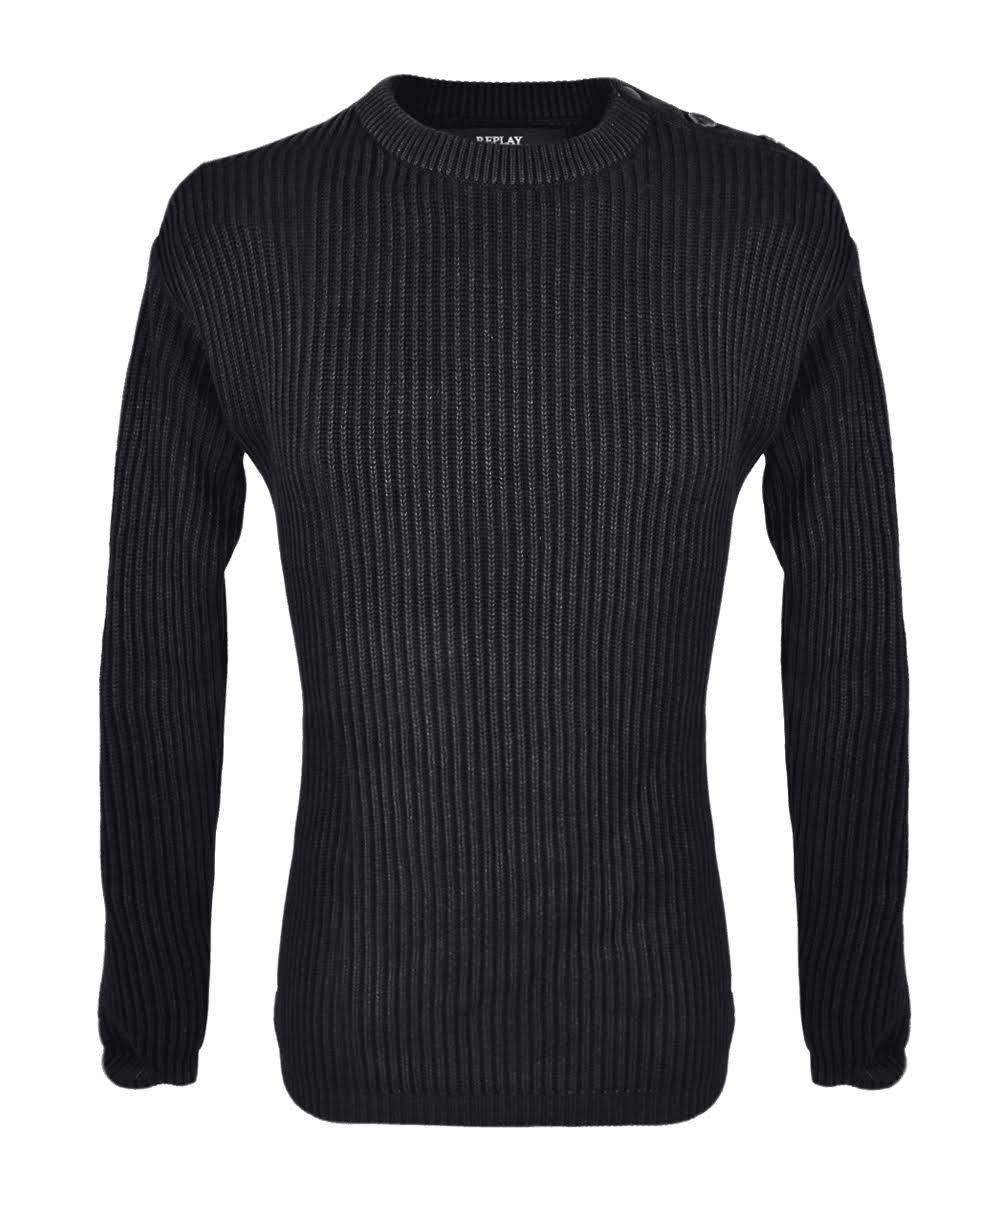 Replay Fisherman Style Loose Fit Jumper in Black